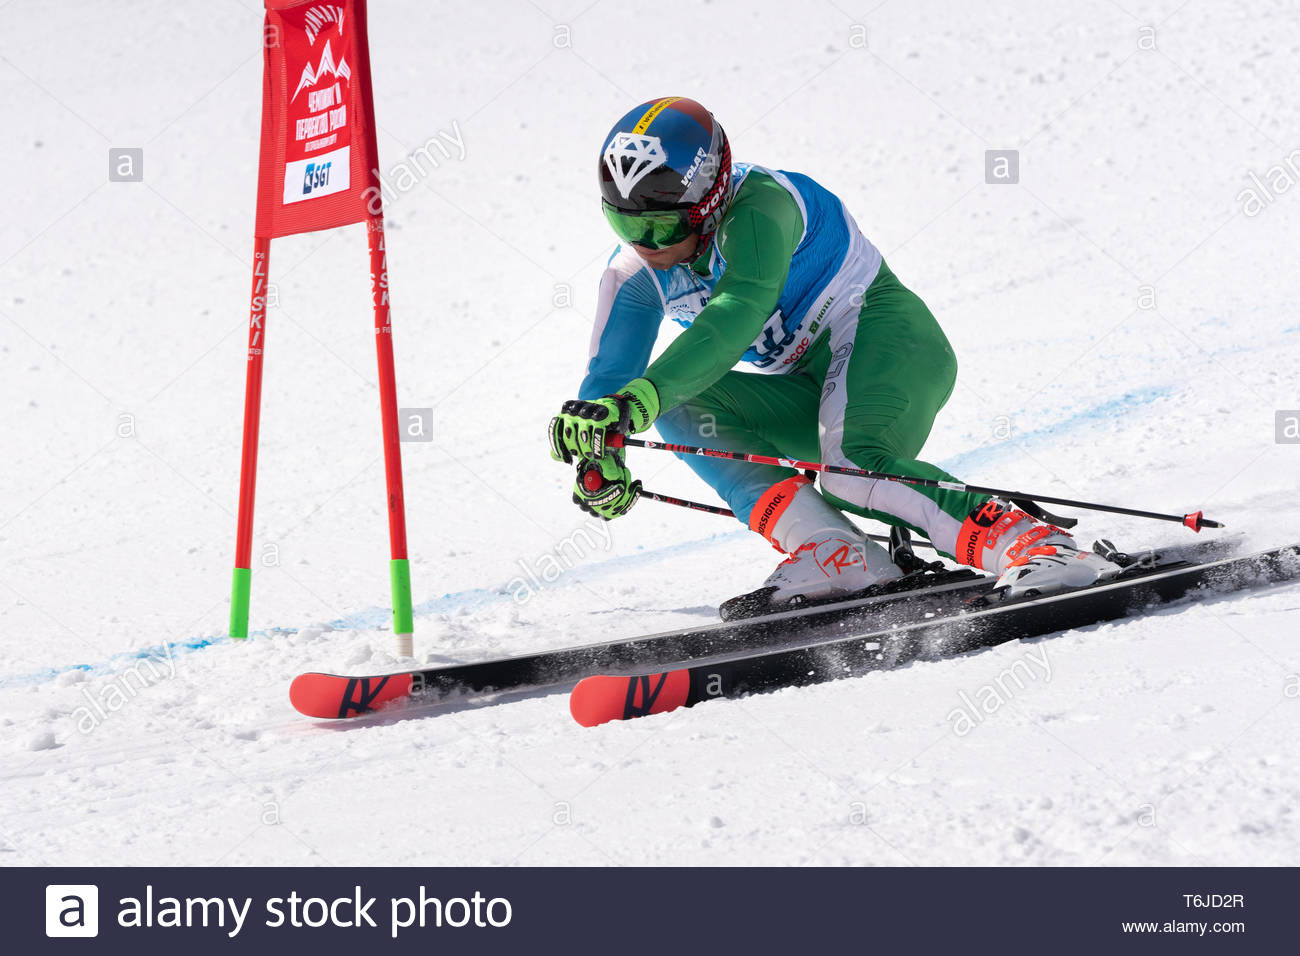 KAMCHATKA PENINSULA, RUSSIAN FAR EAST - APR 1, 2019: Mountain skier Tukhtaev Komiljon (Republic Uzbekistan) skiing down mountain slope. International  - Stock Image